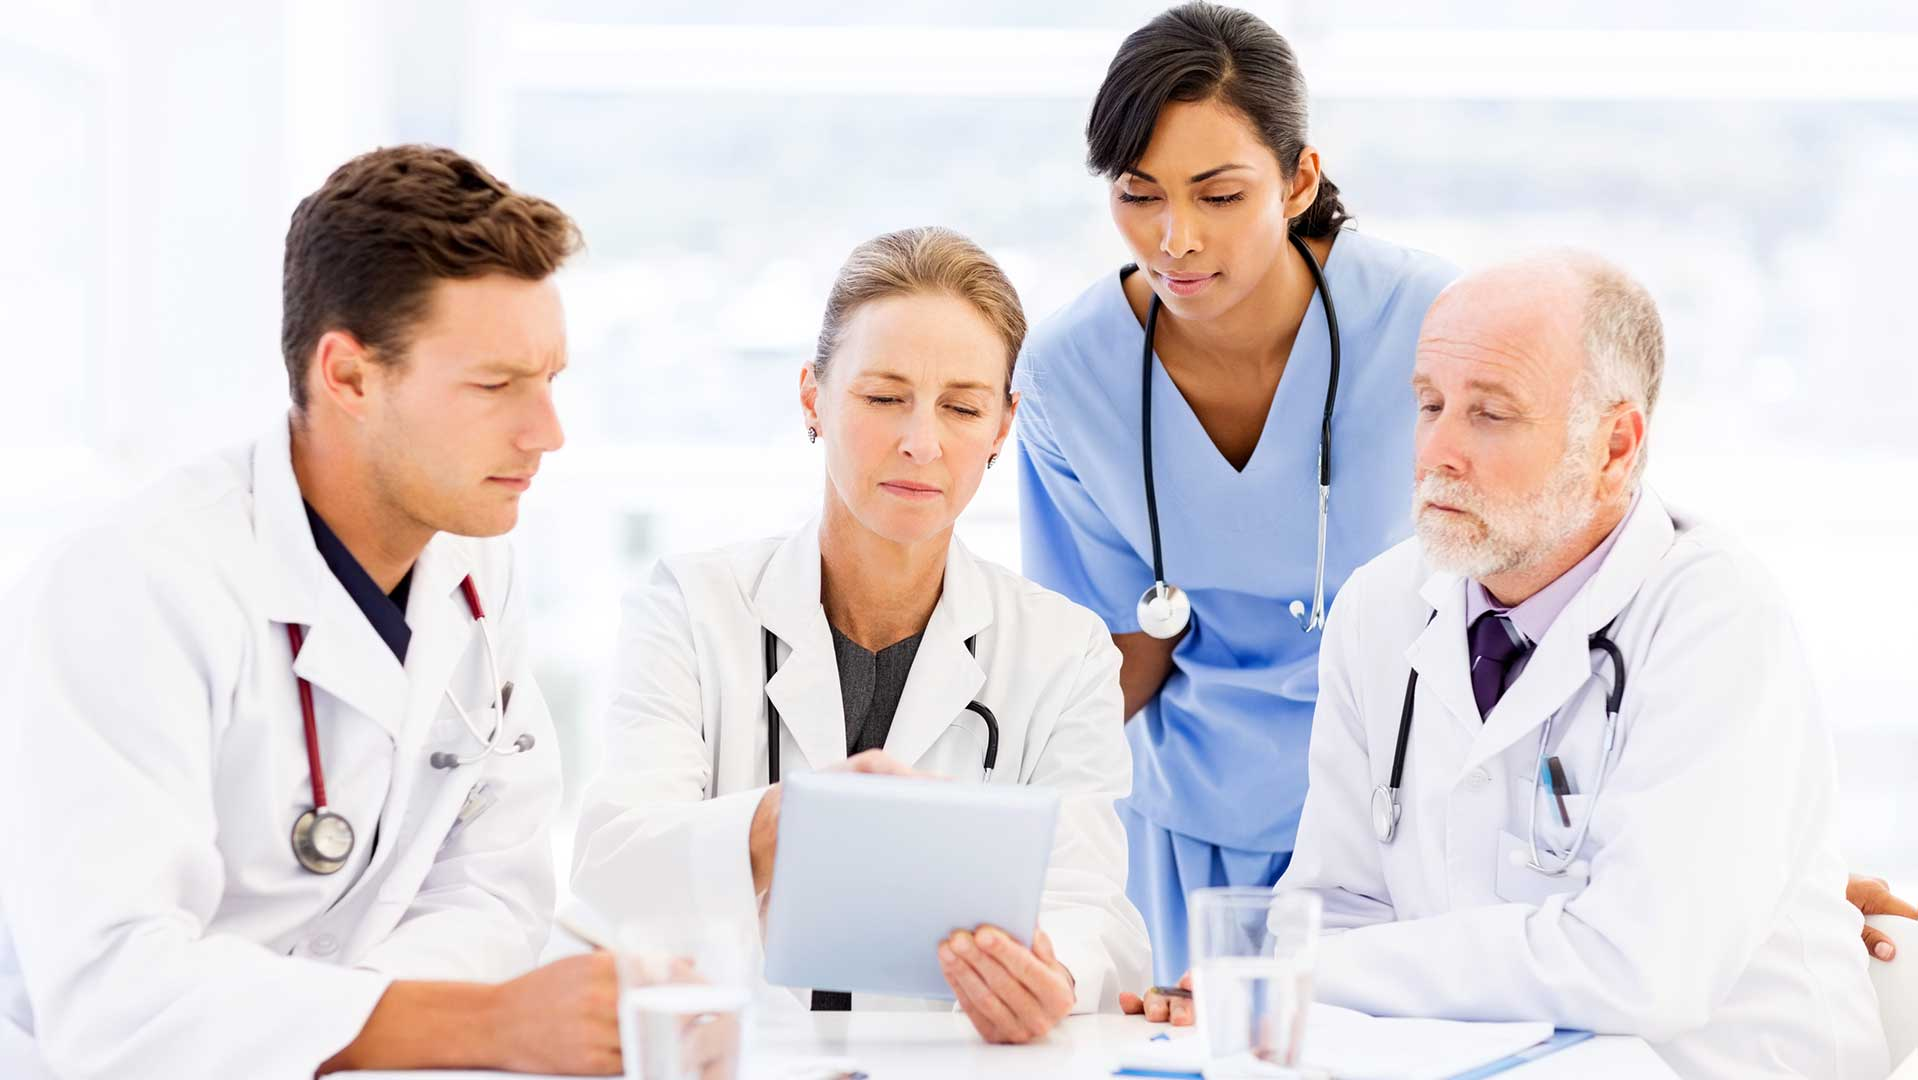 three doctors and a nurse looking at some data on a tablet